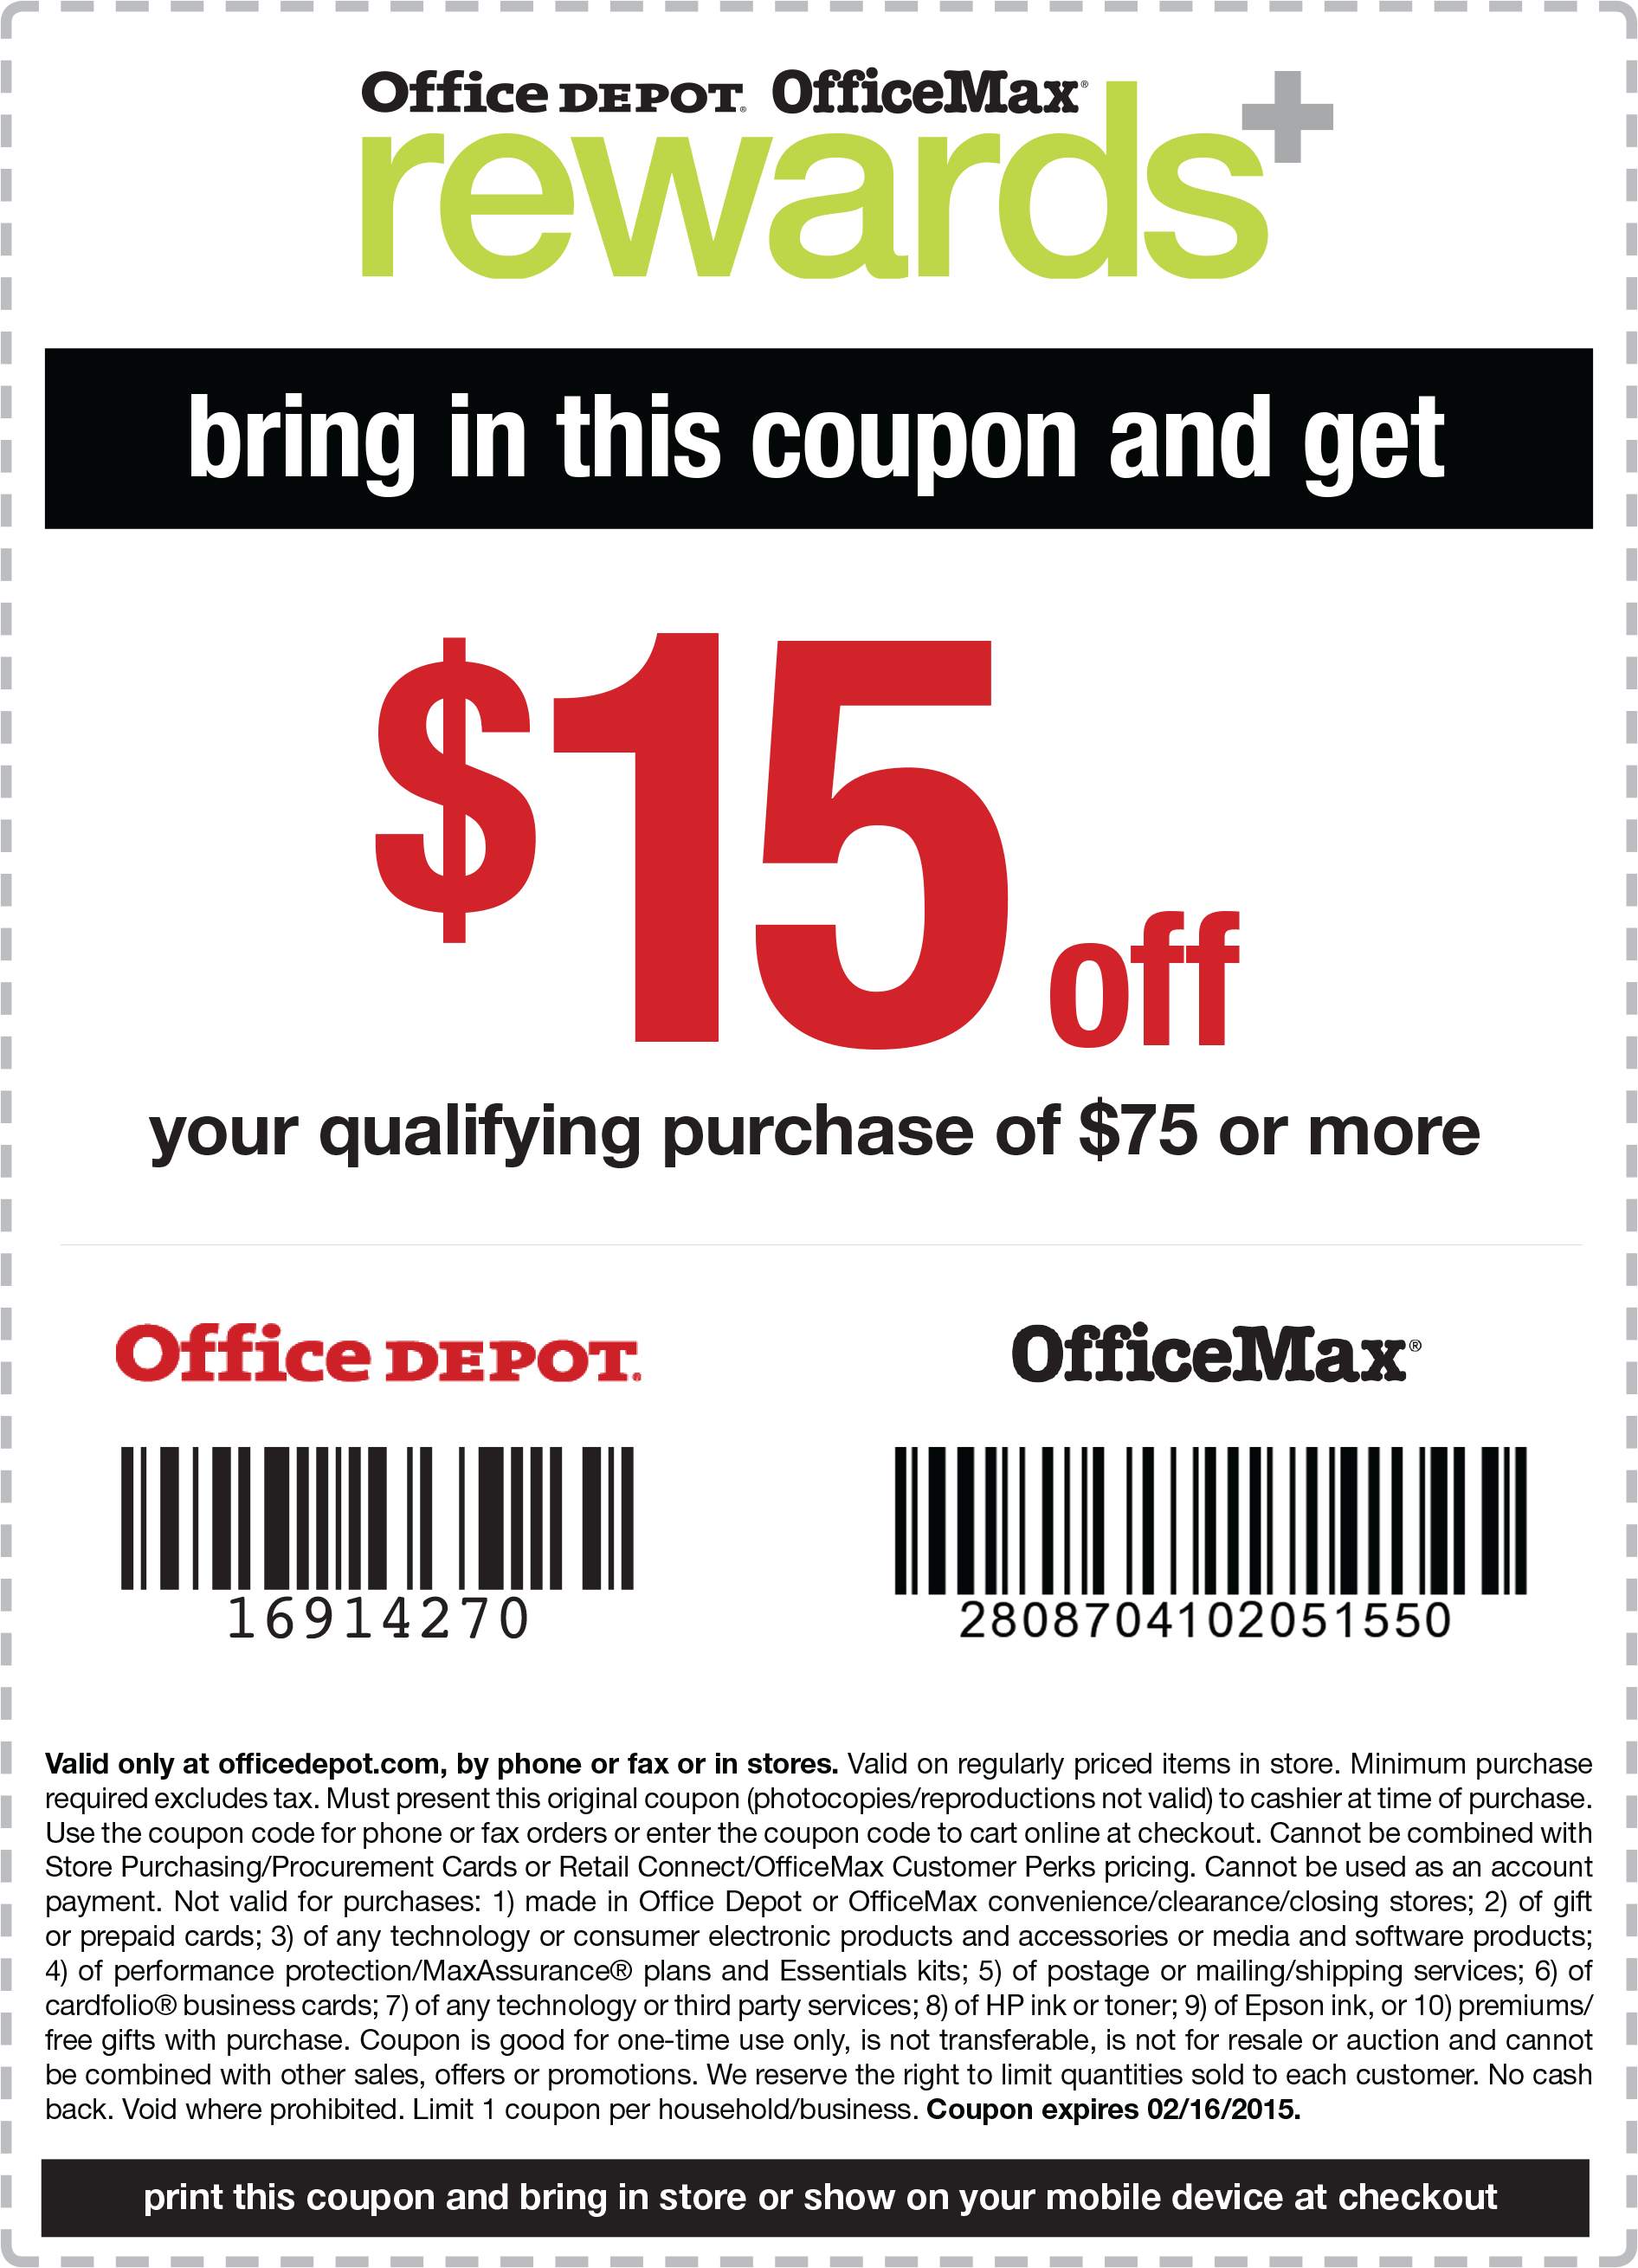 Office Depot Coupon February 2019 $15 off $75 at Office Depot & OfficeMax, or online via promo code 16914270